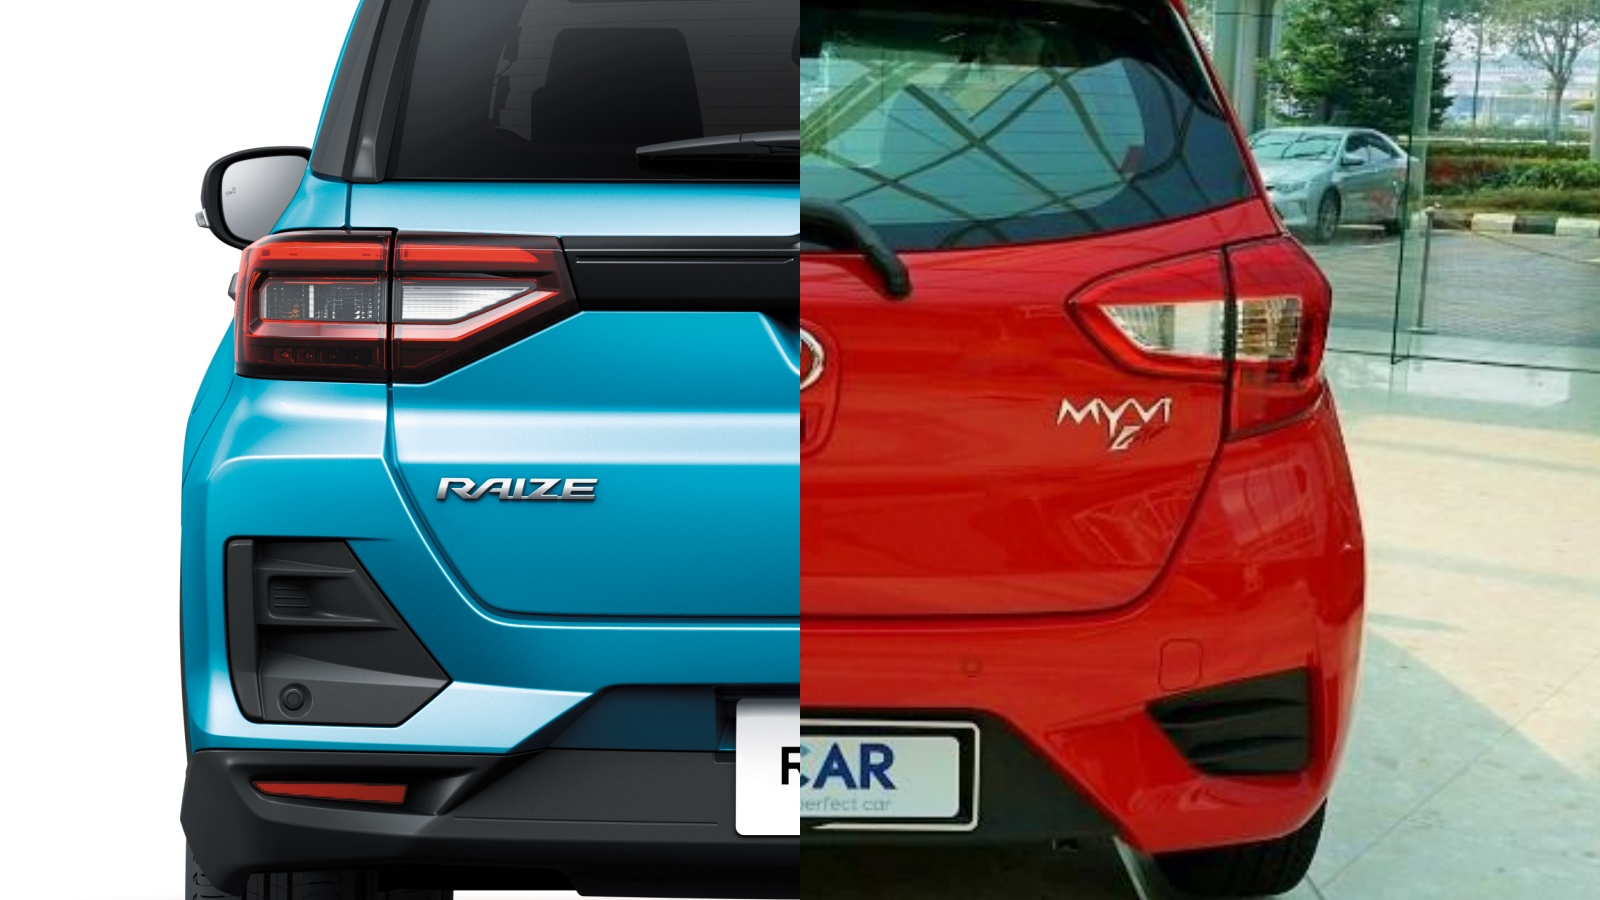 The Toyota Raize is not that much bigger than a Perodua Myvi